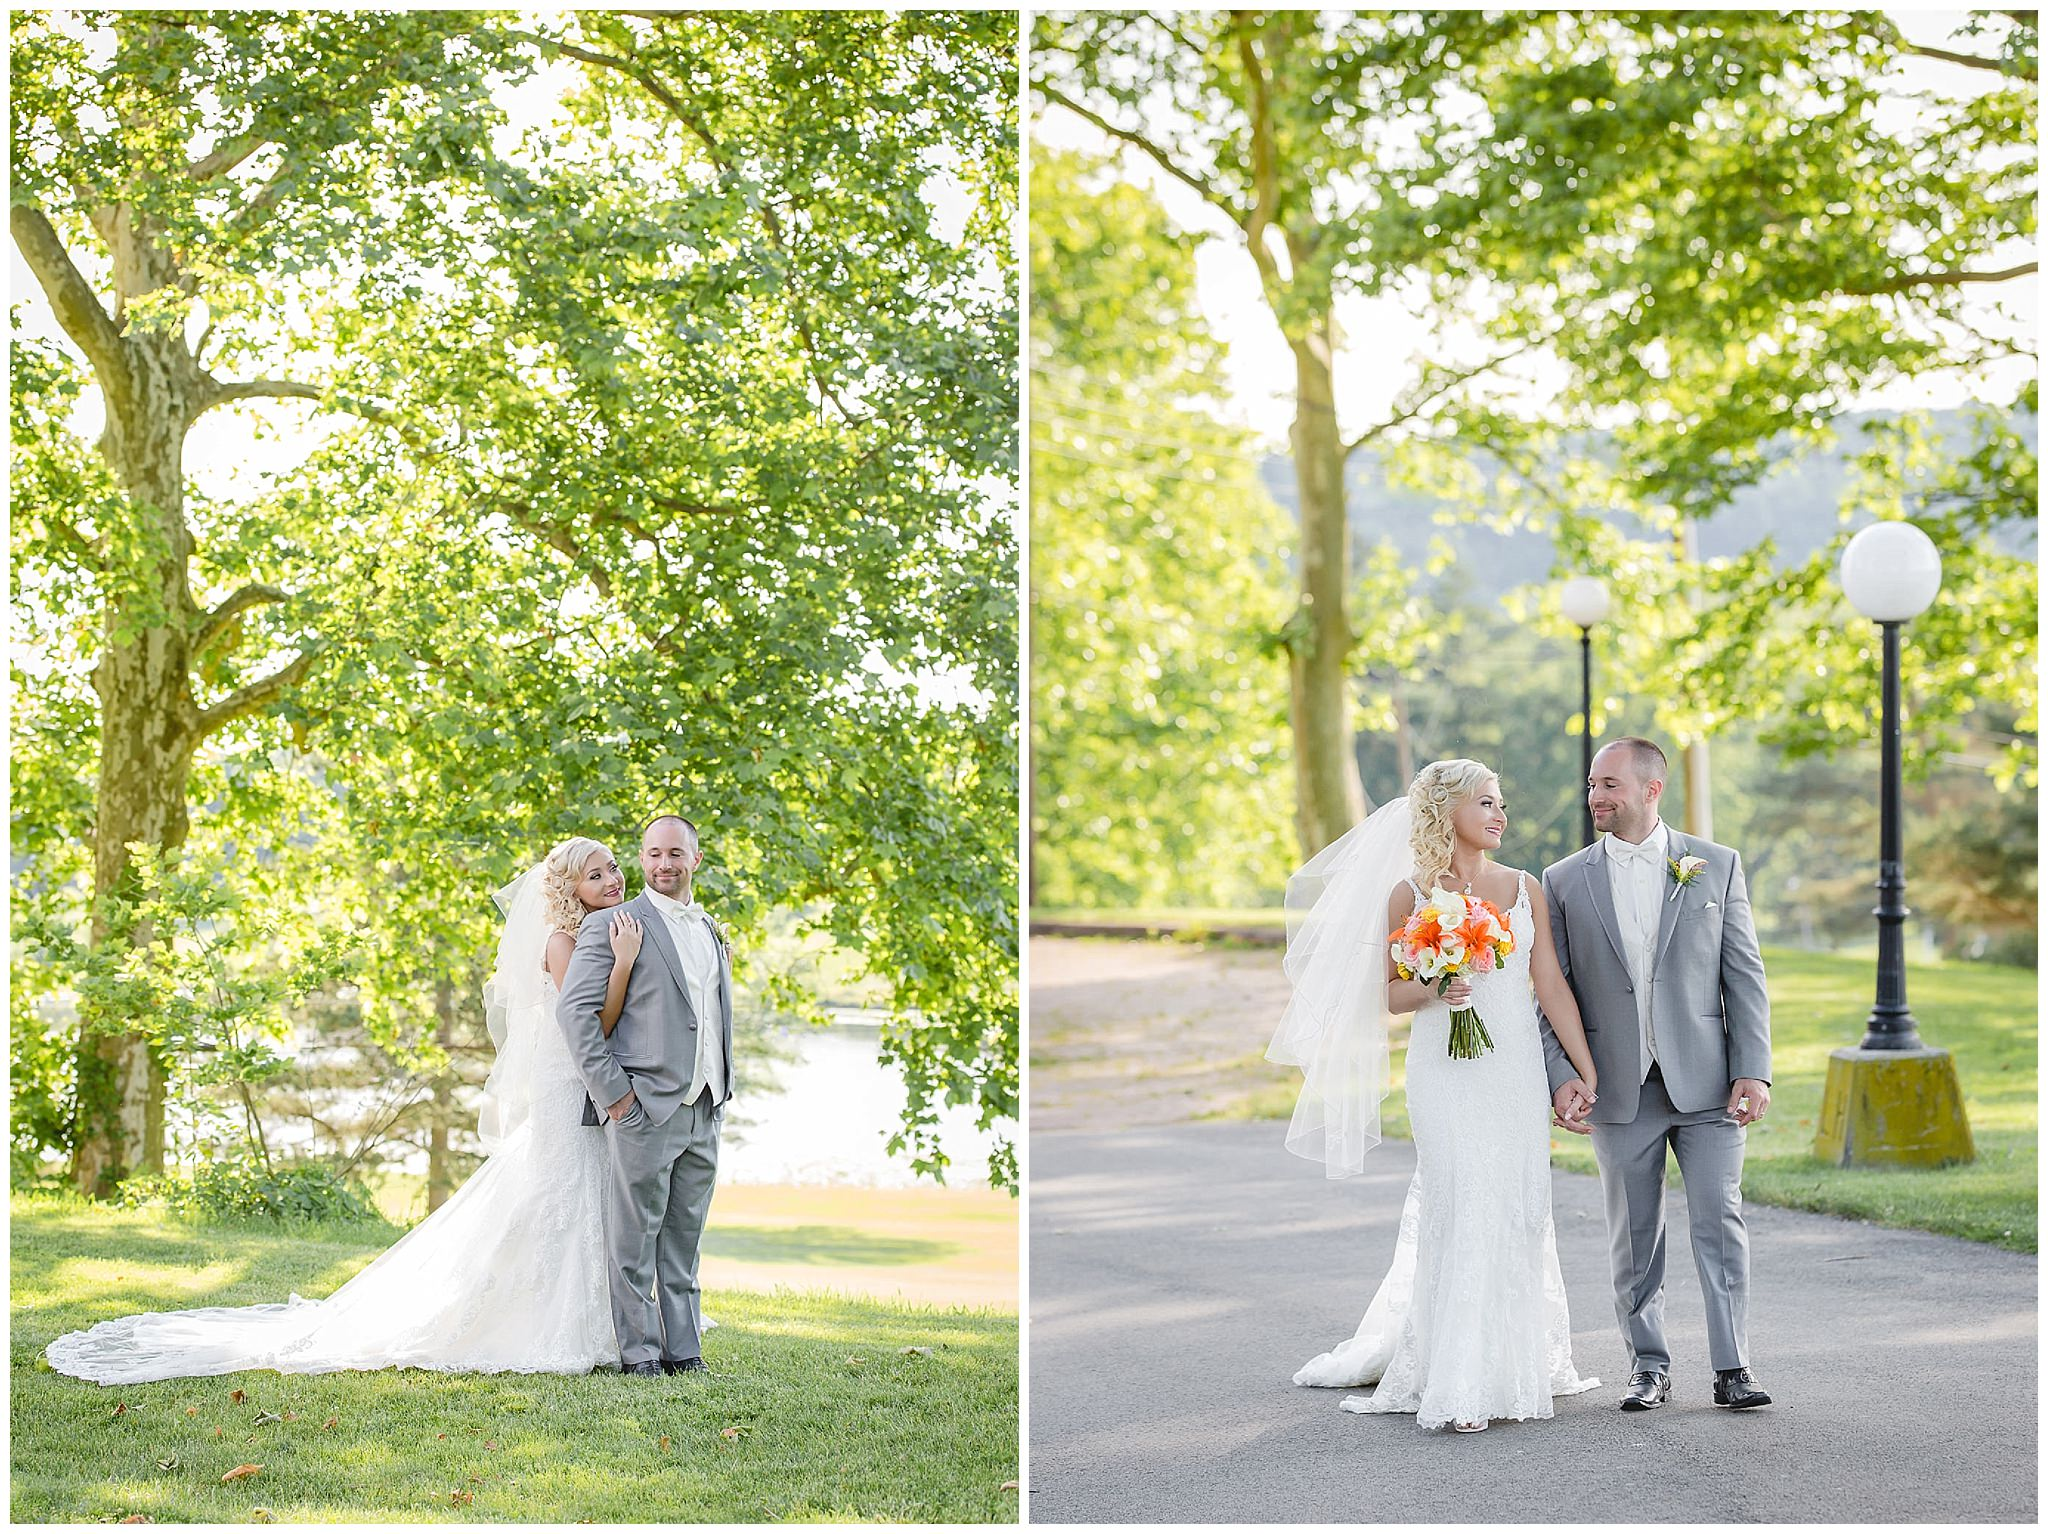 Bride and groom's portrait session at Linden Hall